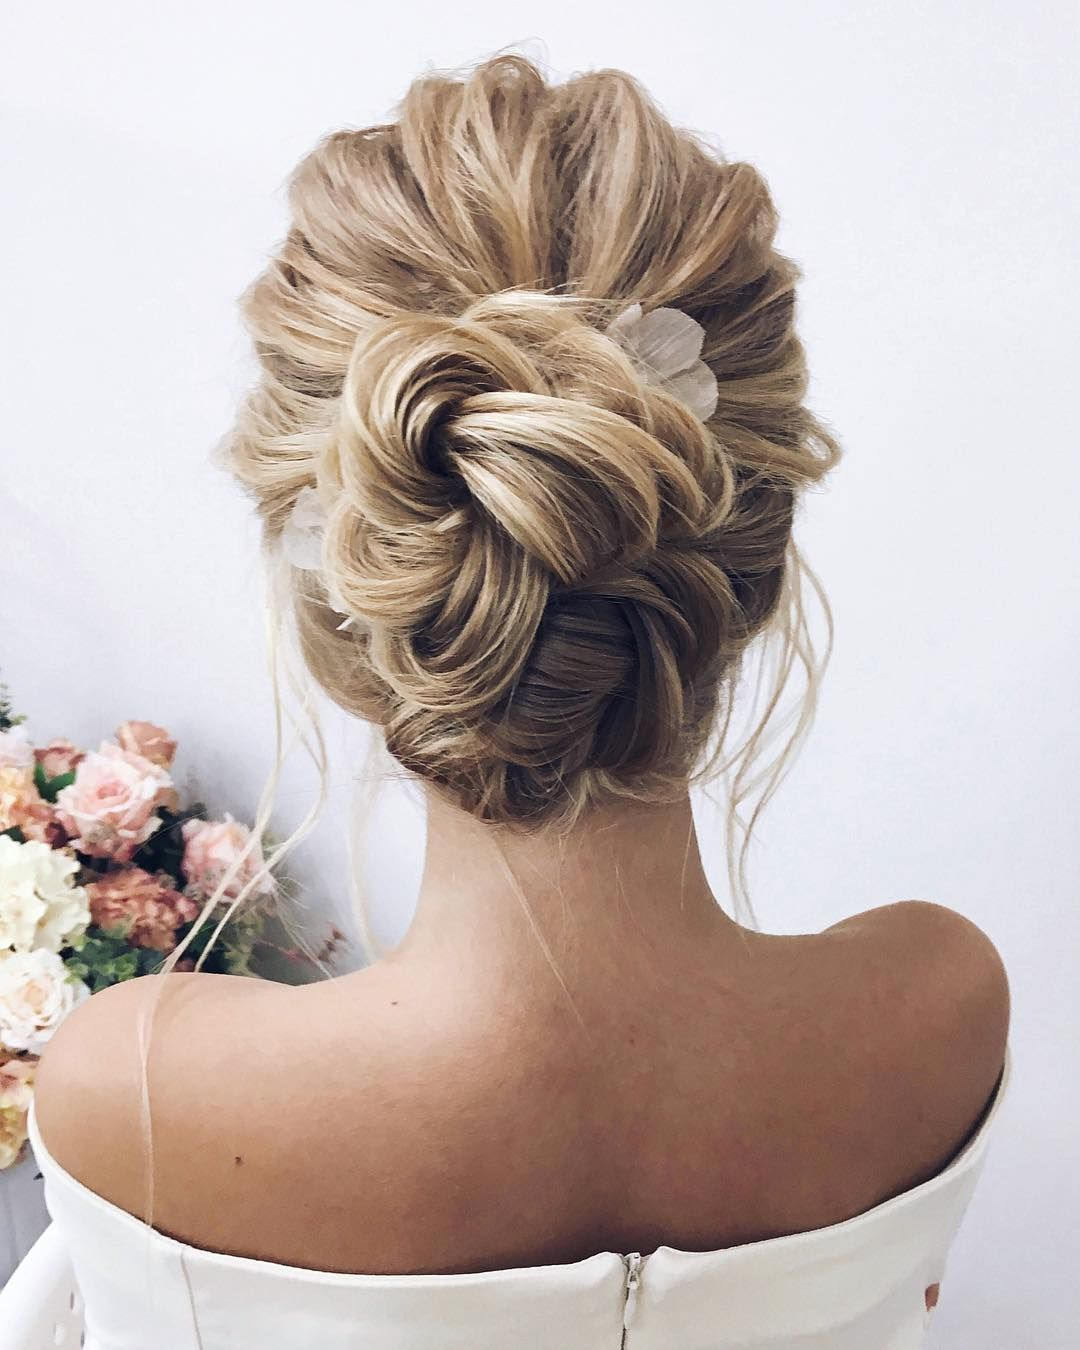 Unique Updo Hairstyle High Bun Hairstyle Prom Hairstyles Wedding Hairstyle Ideas Wedding Short Wedding Hair Unique Wedding Hairstyles Vintage Wedding Hair